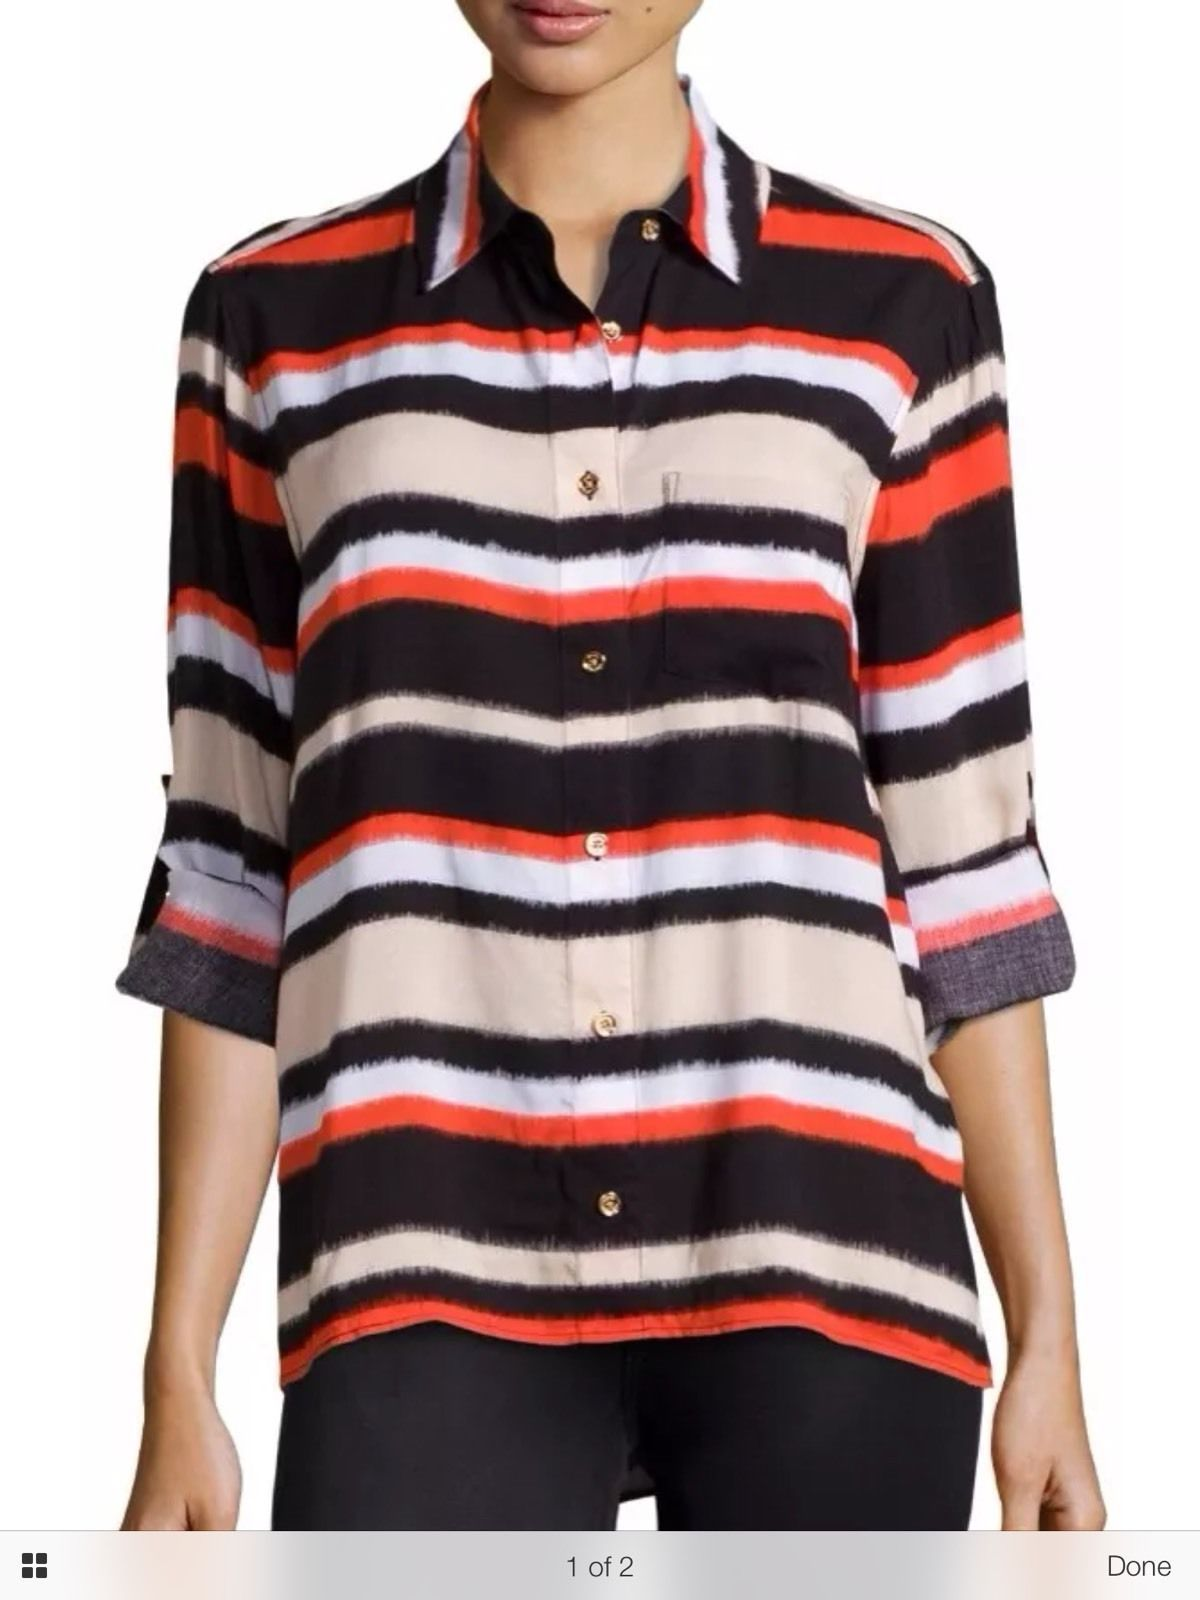 Michael Kors Striped Button Front Shirt Top Blouse In Cherry Tomato Red Medium